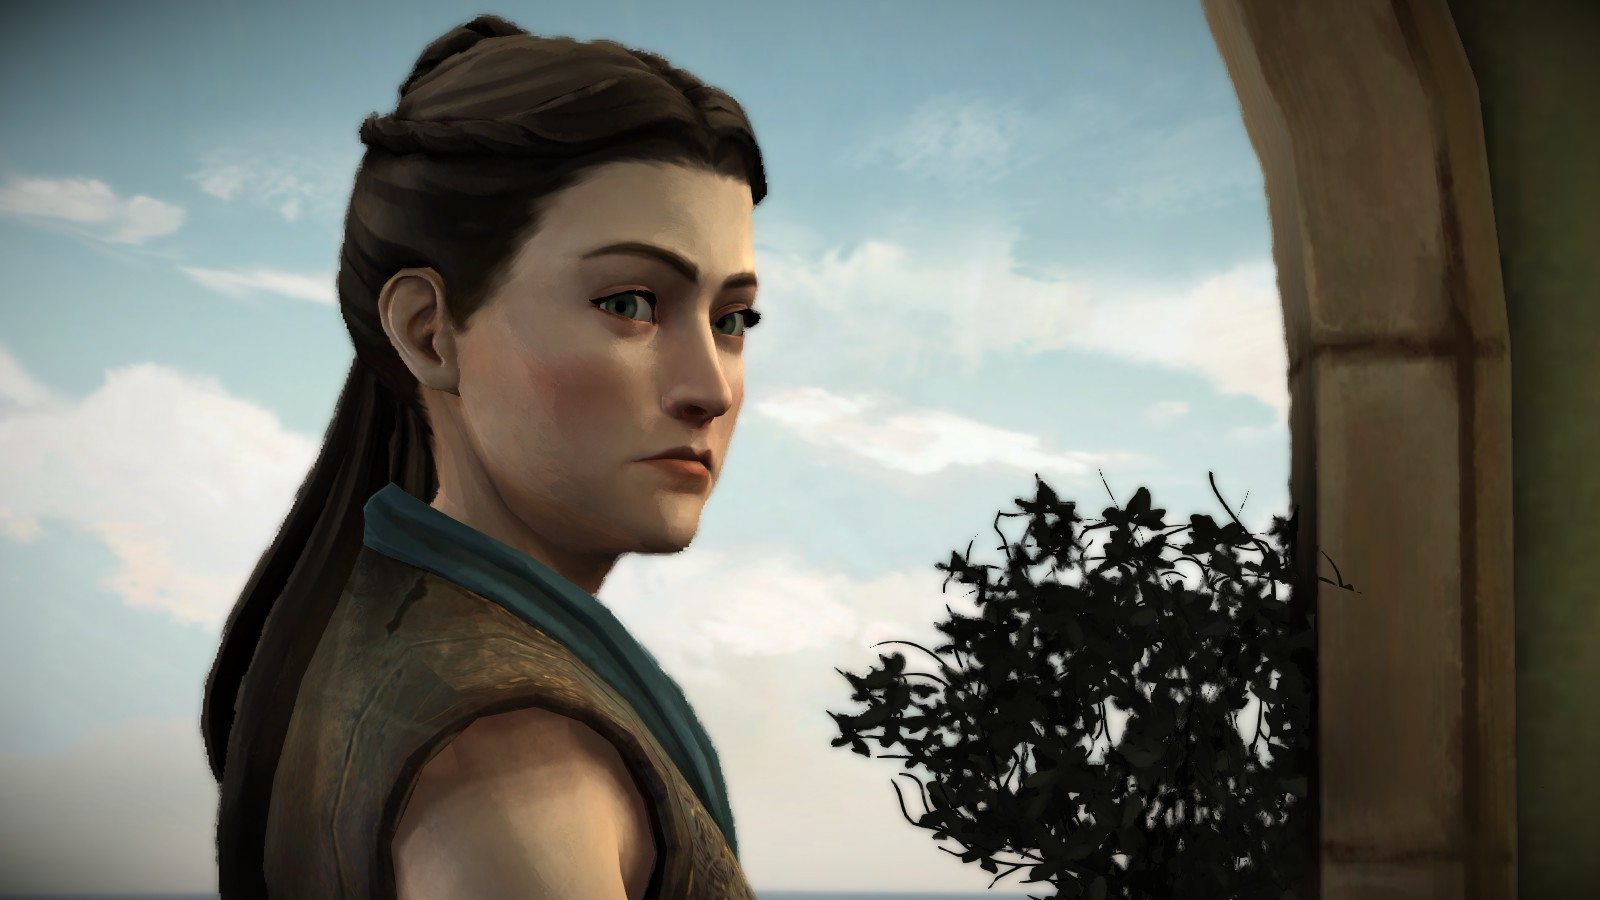 Mira Forrester risks her life to save her family in Game of Thrones.